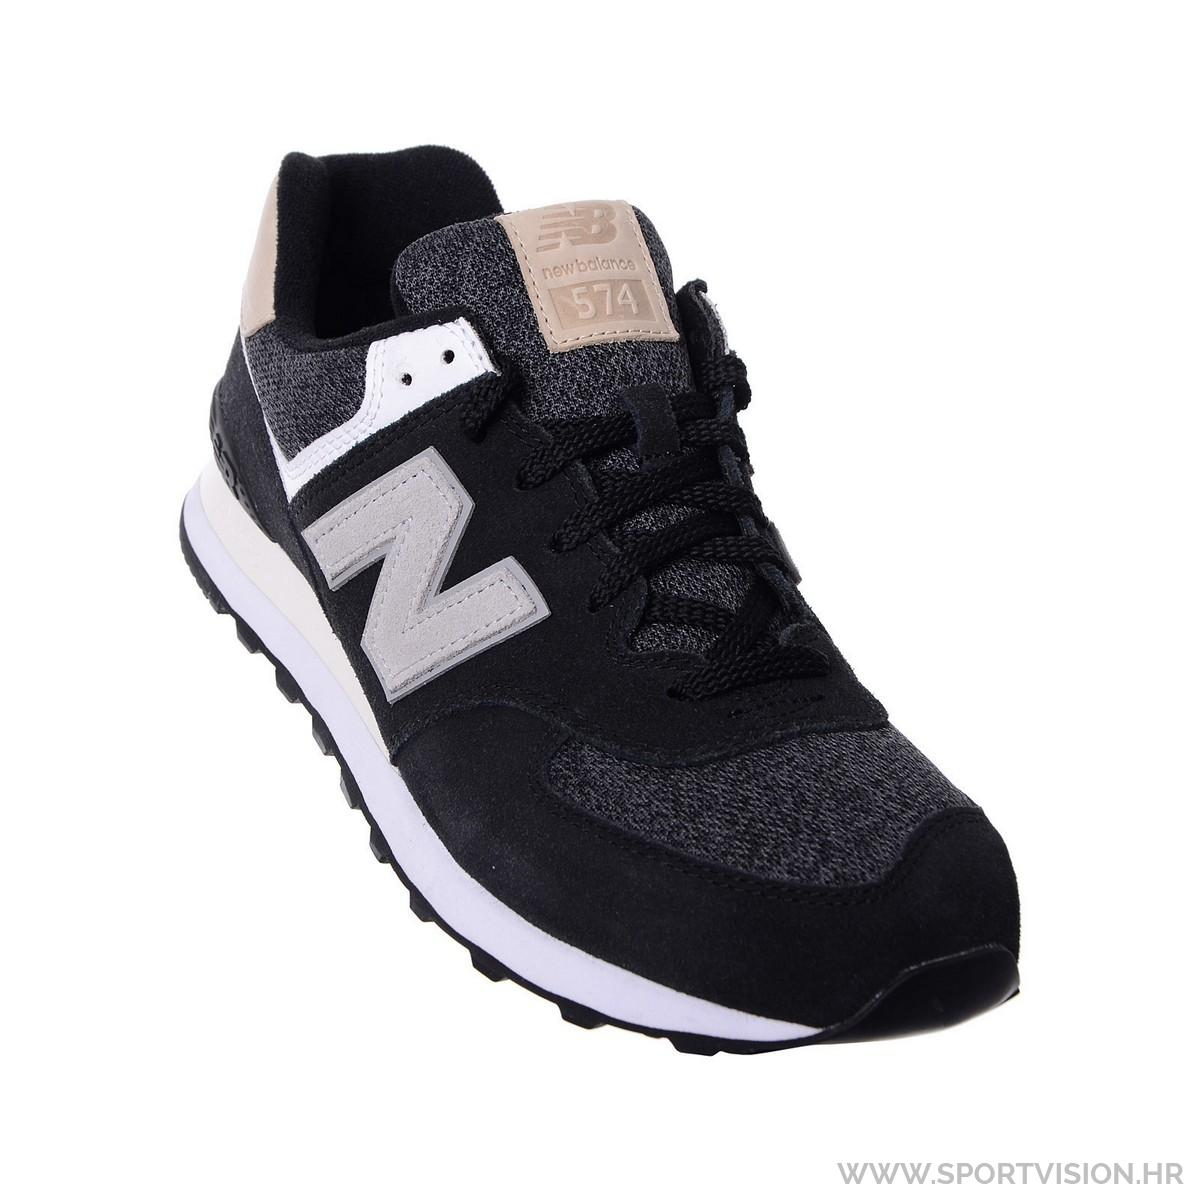 ML574VAI New Balance